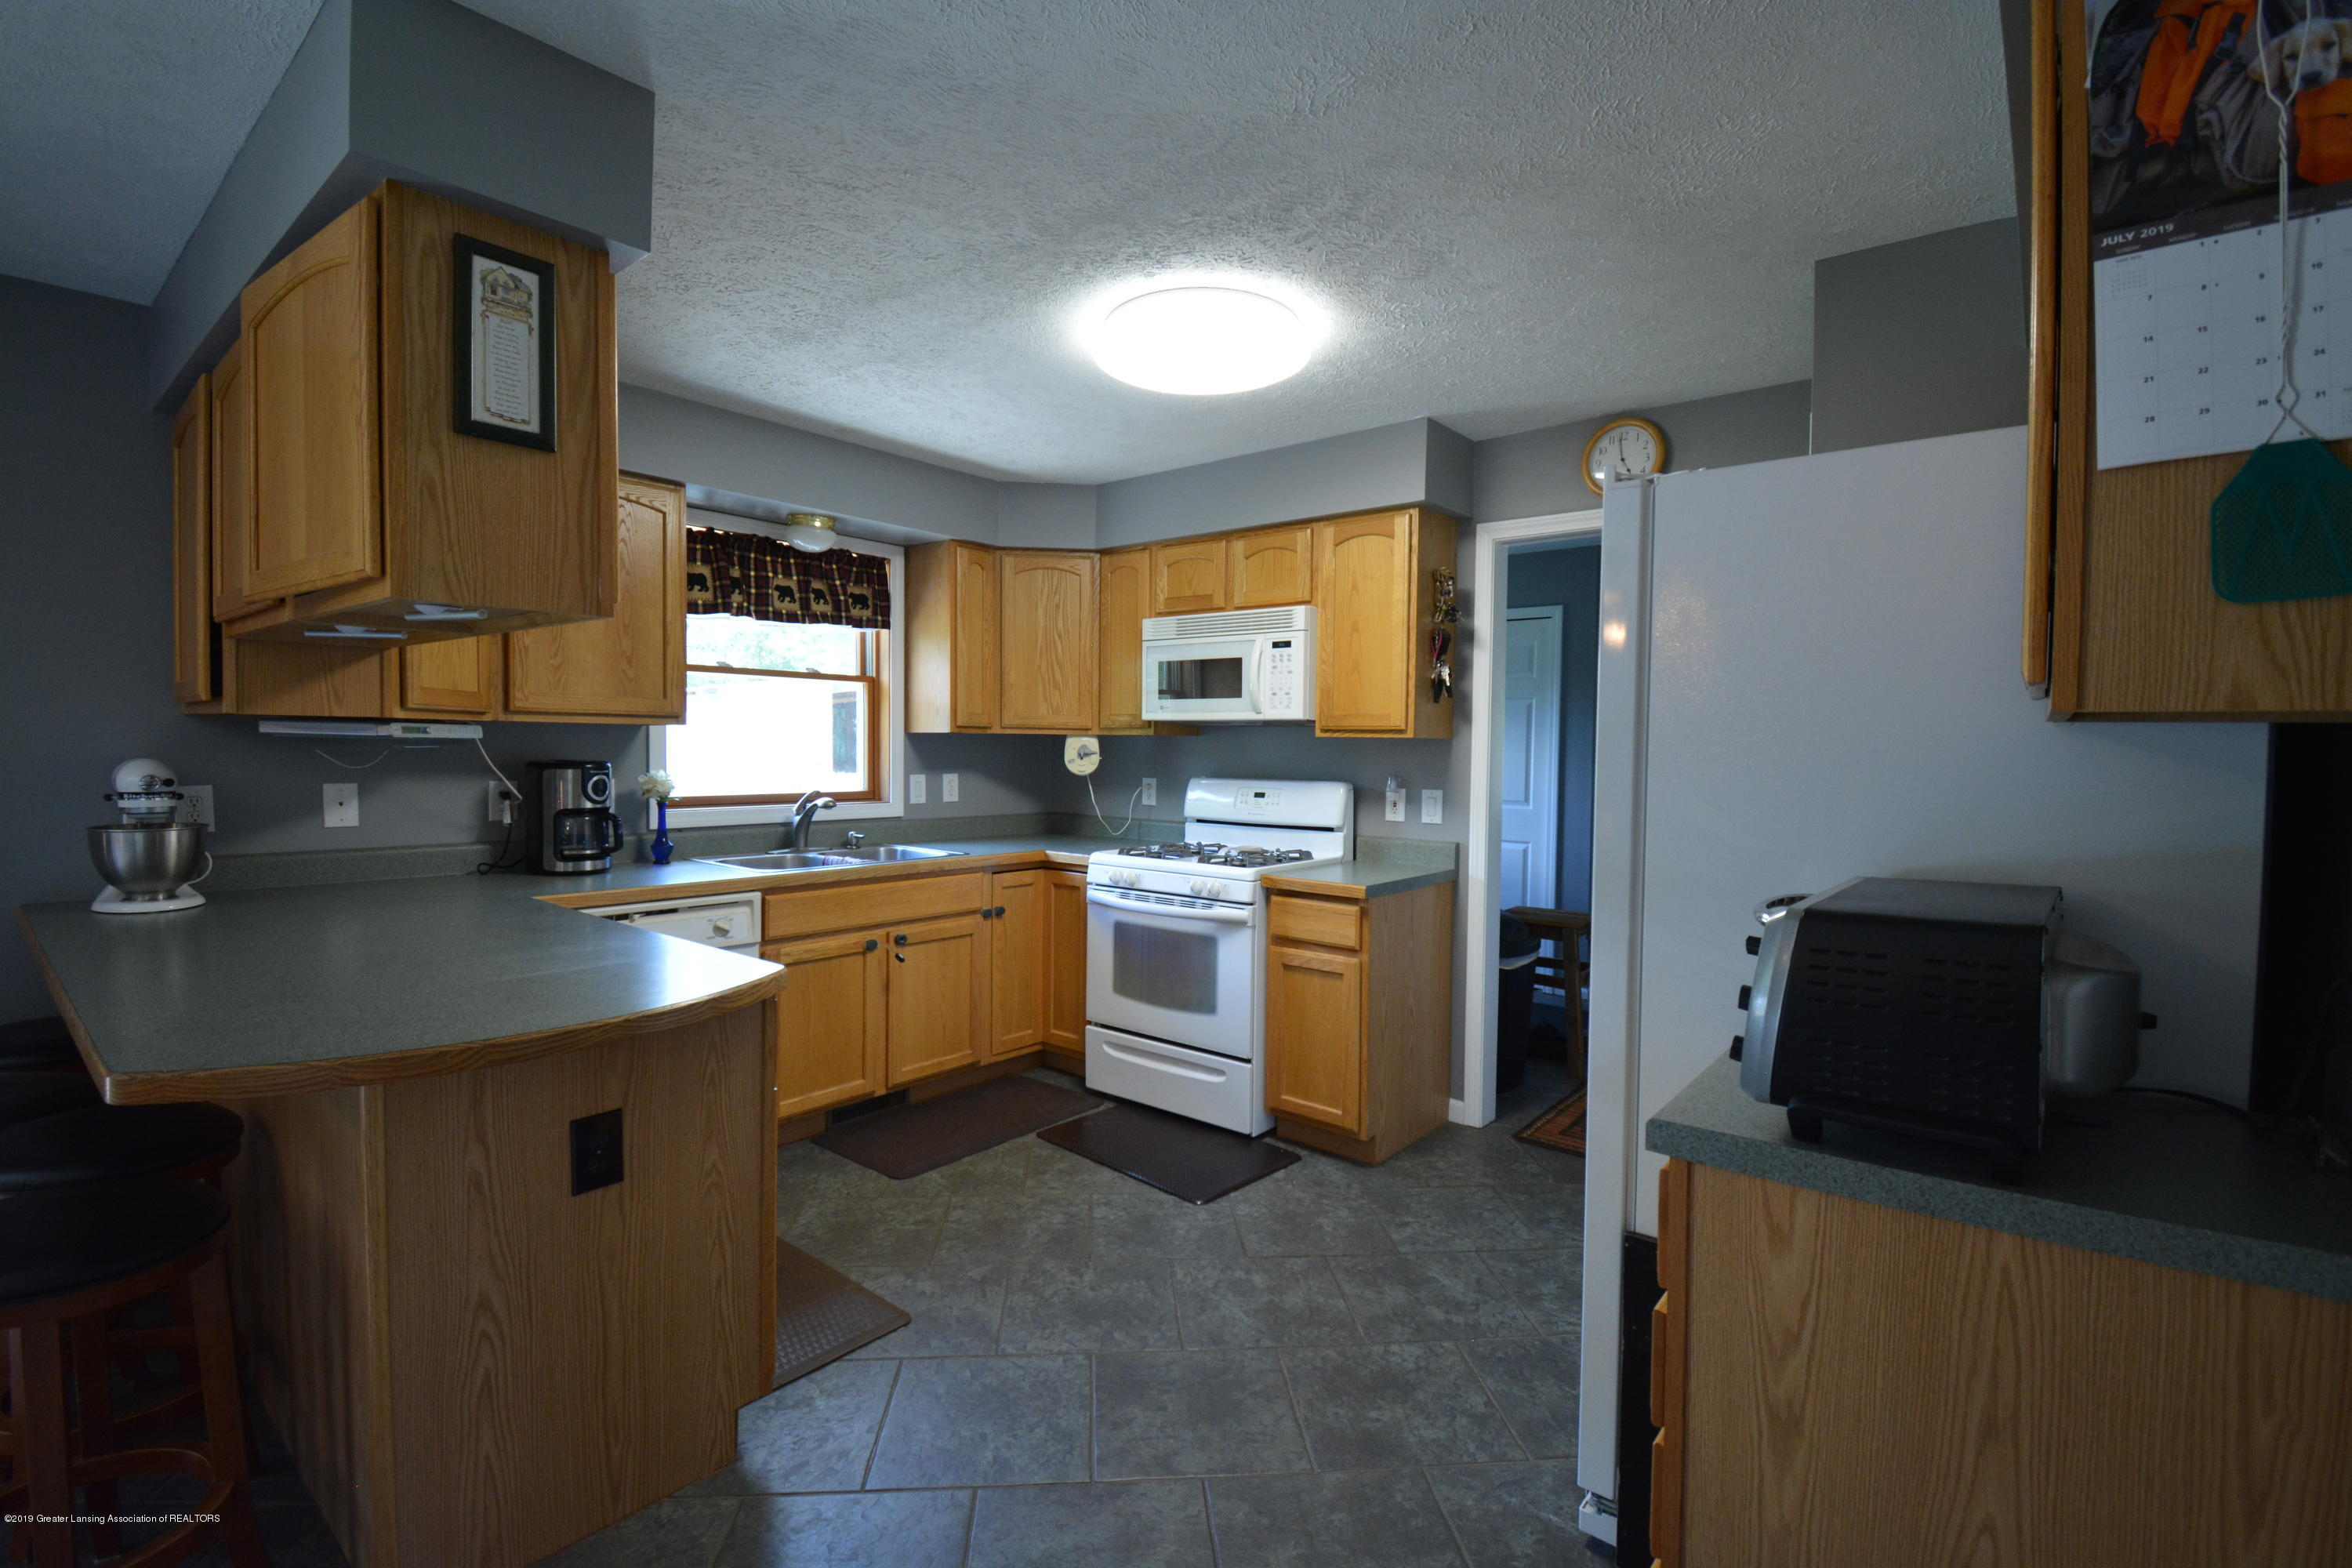 7459 Rossman Hwy - Kitchen View 2 - 13